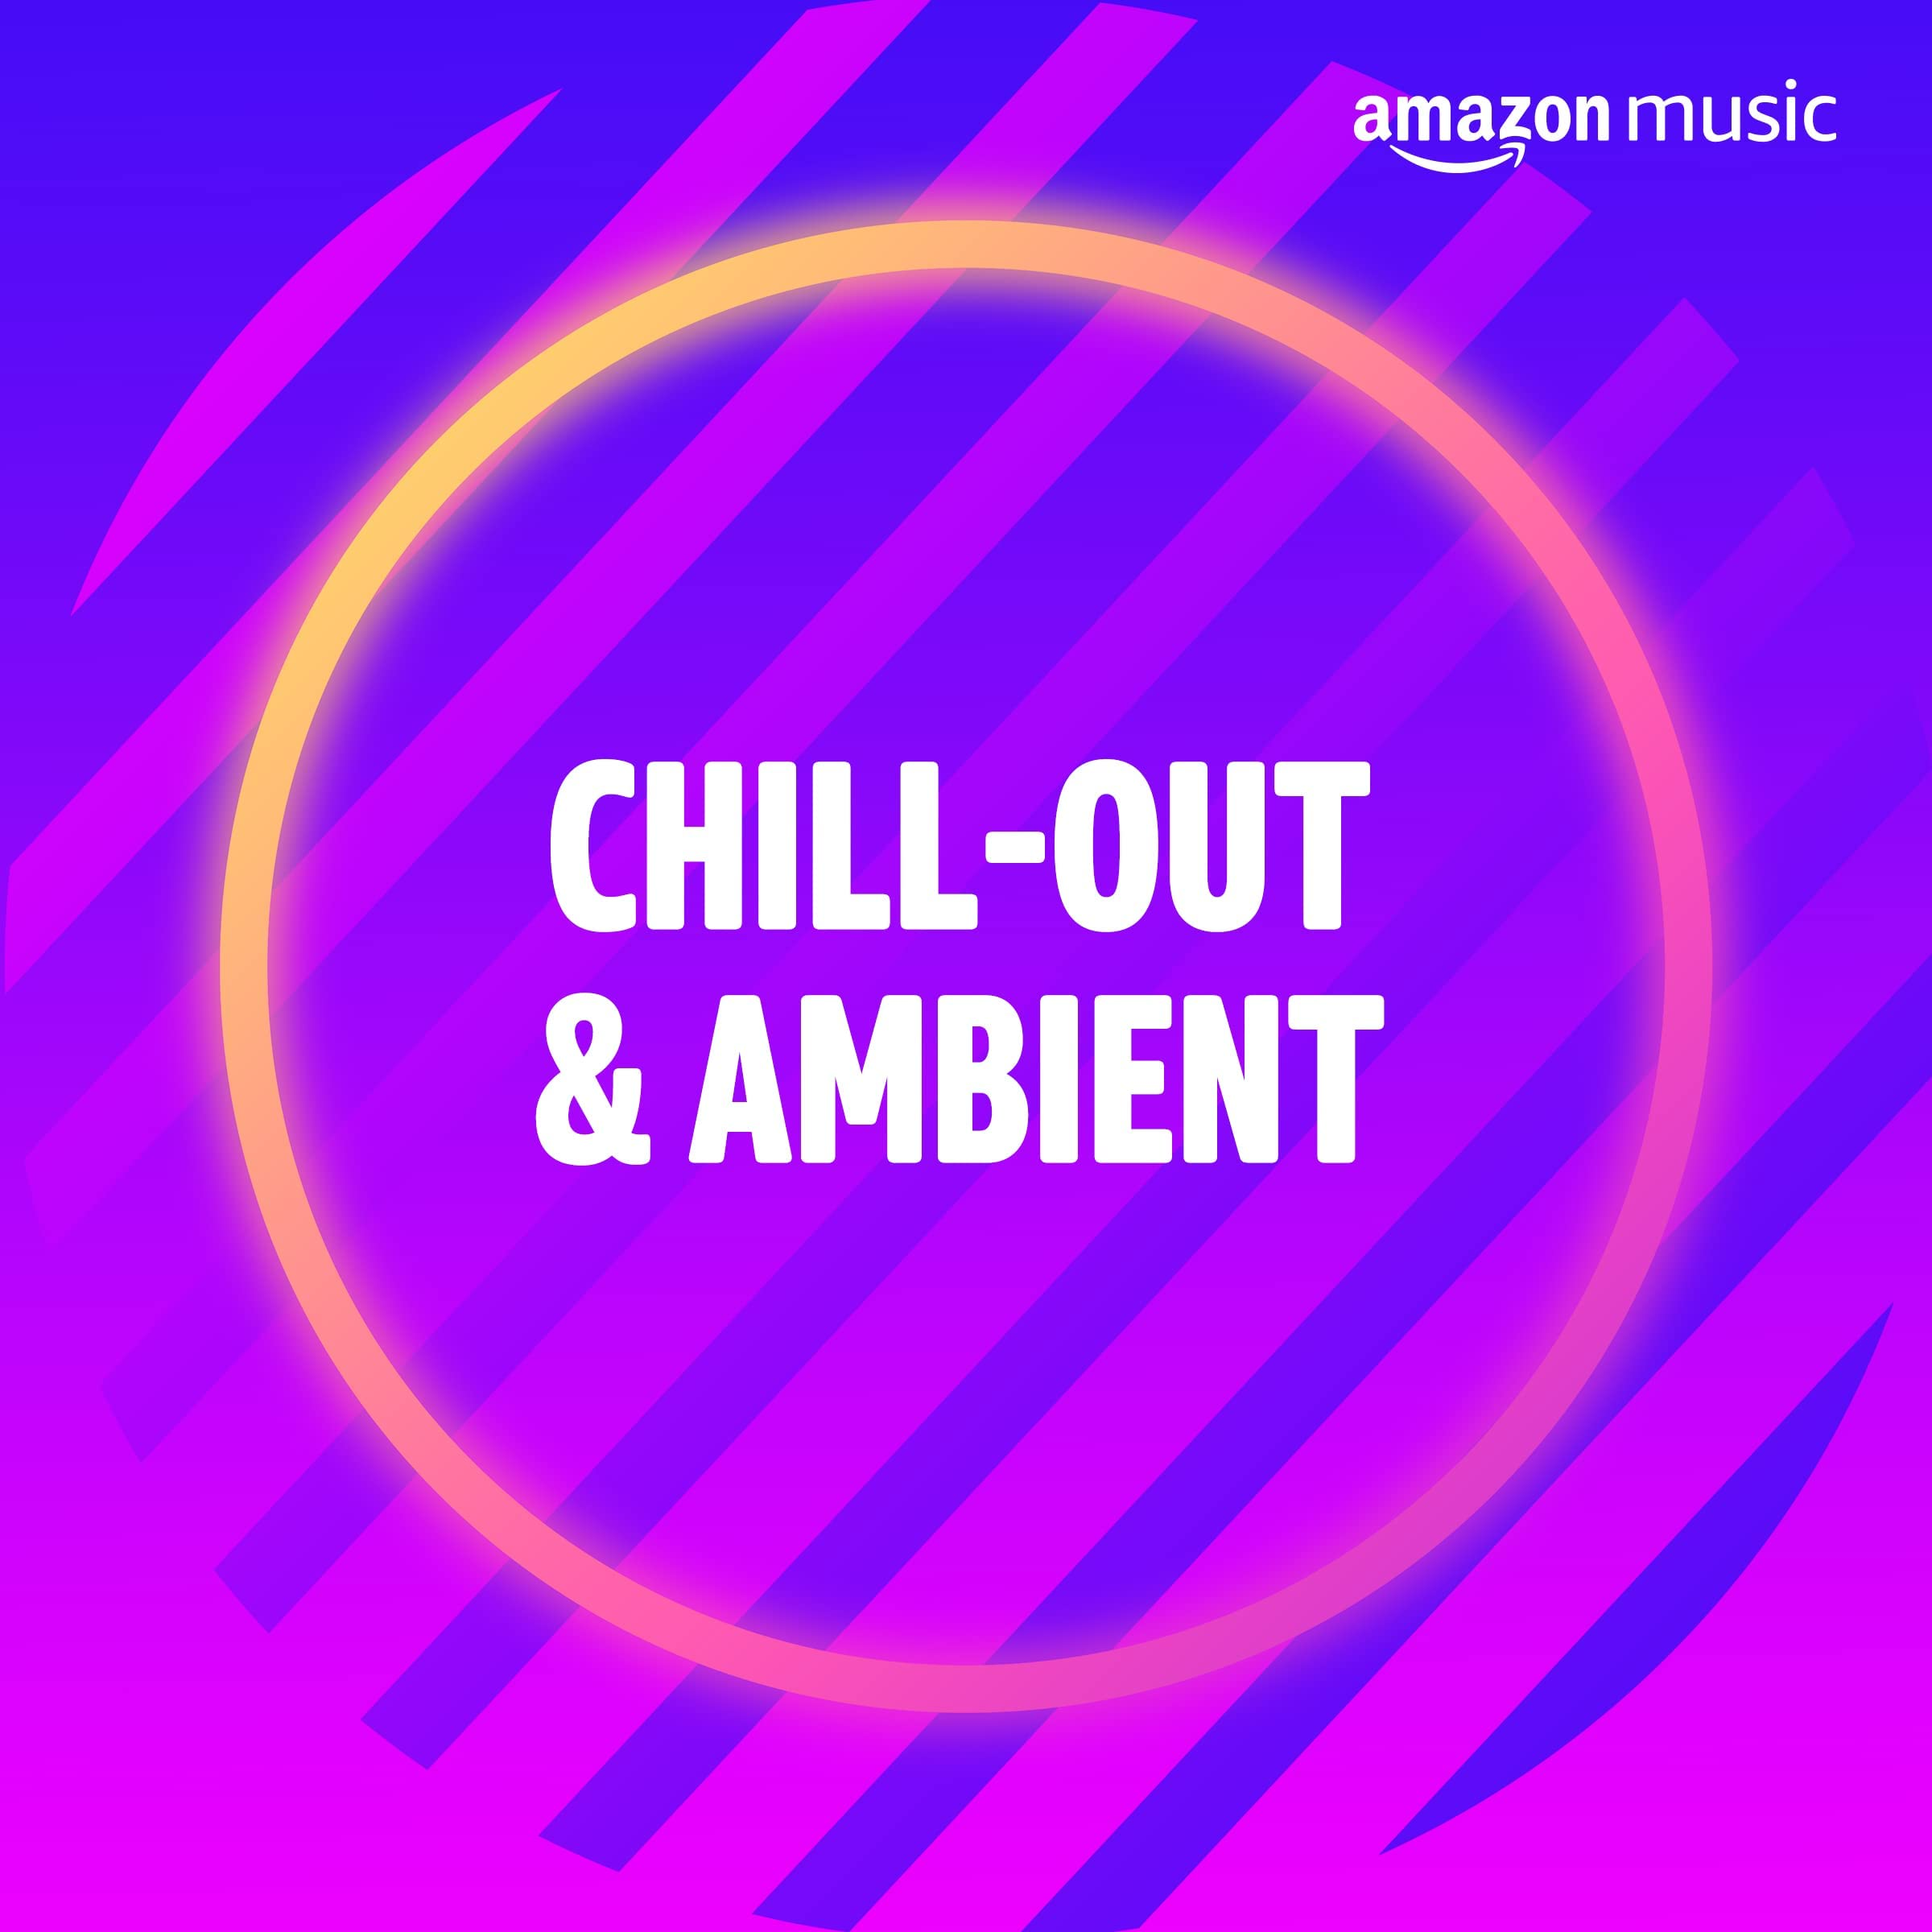 Chill-out & Ambient